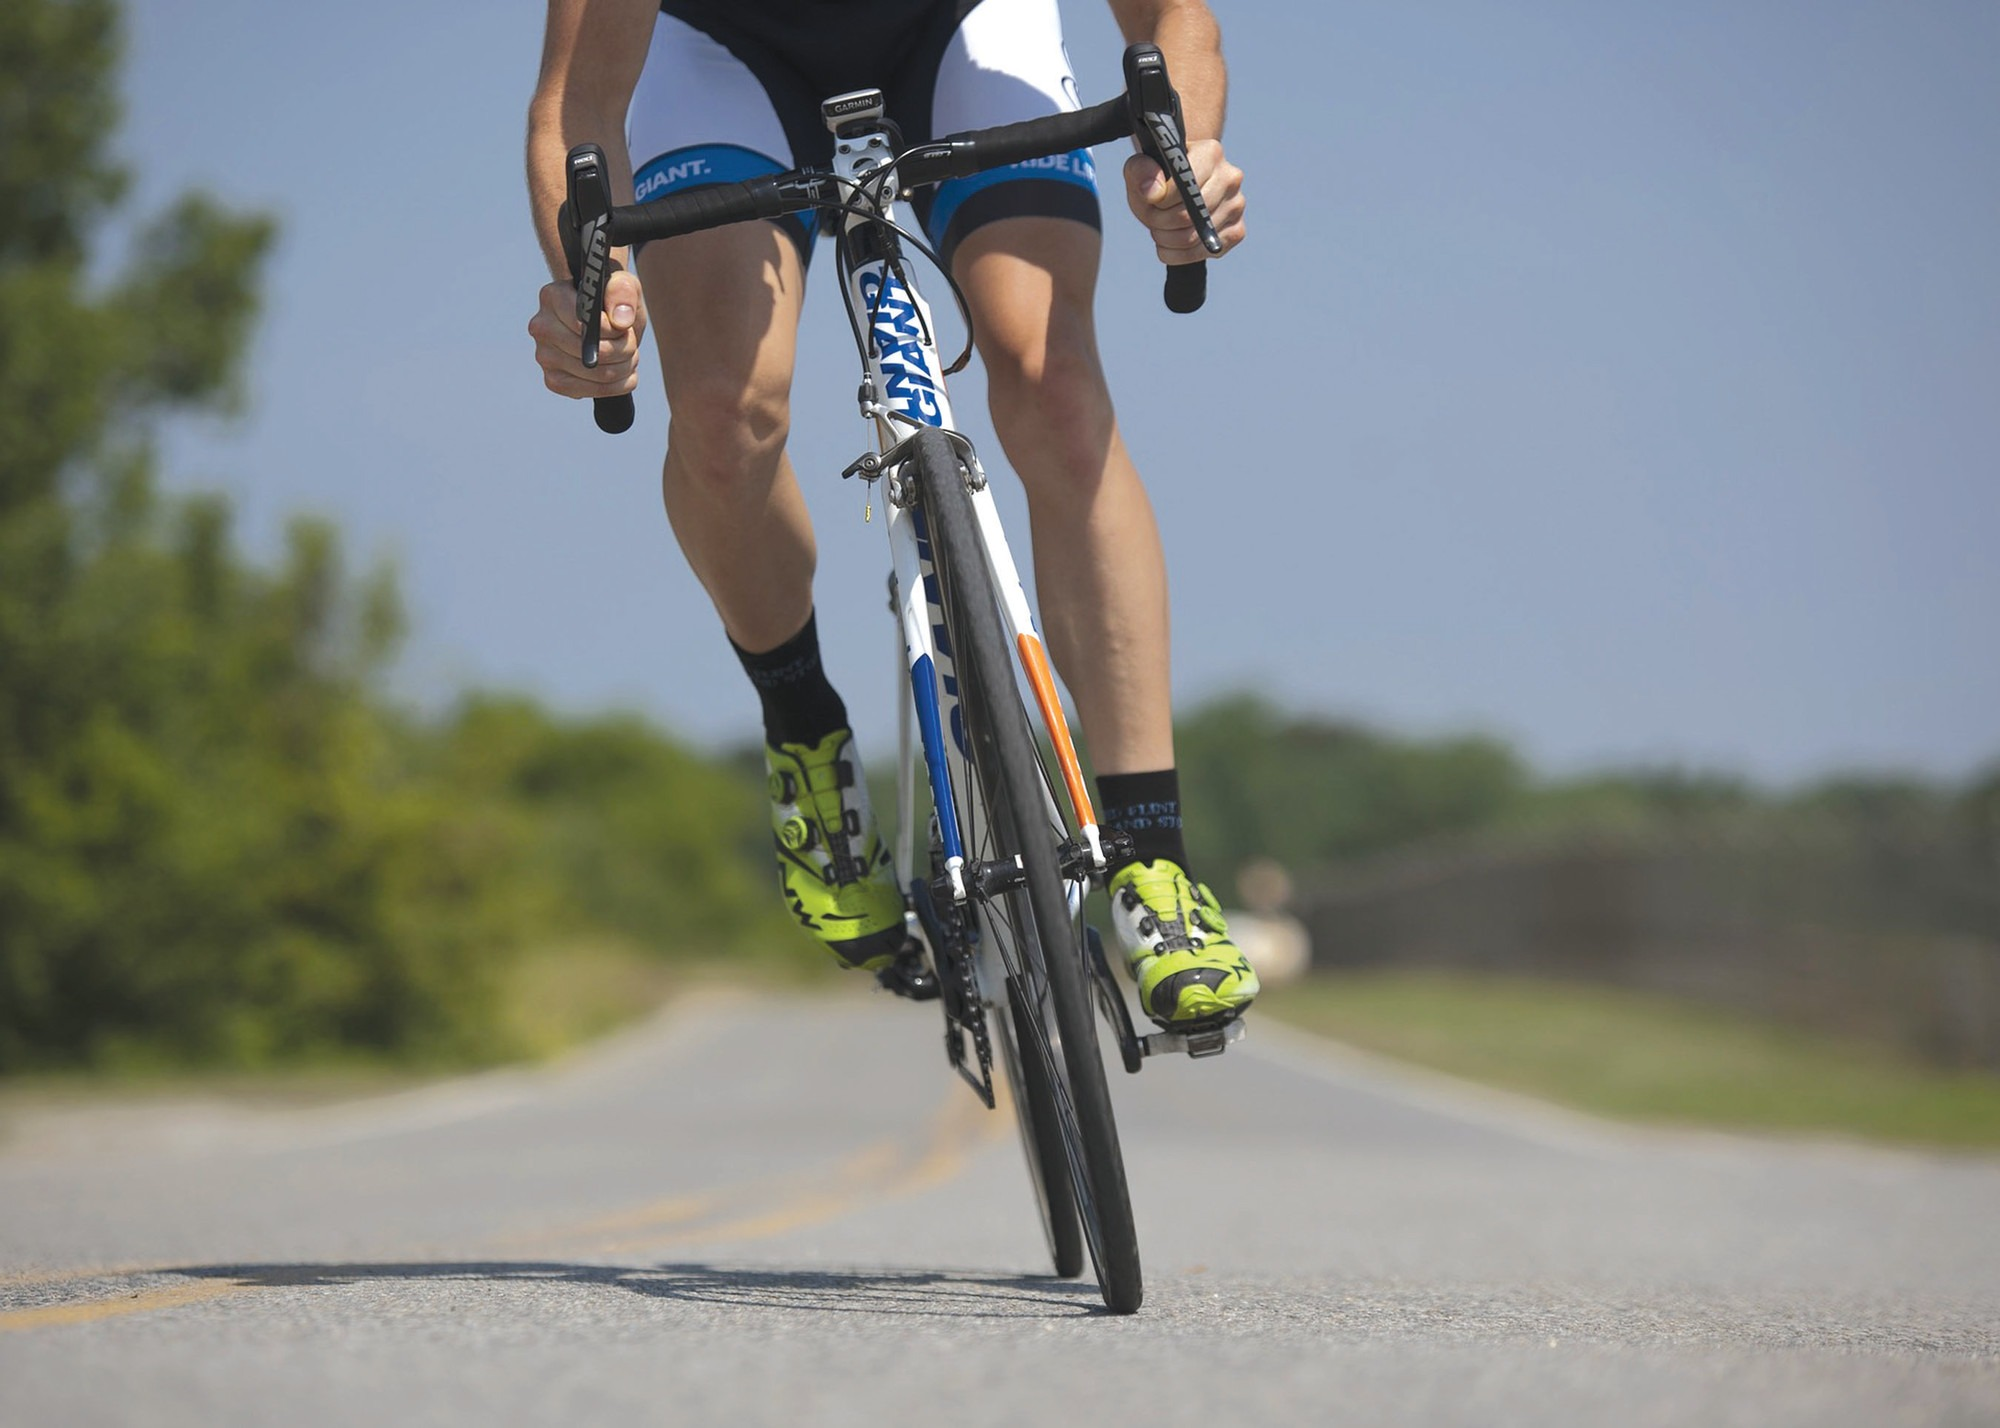 Bicycle Corporation of America will expand in Summerton with $5M investment